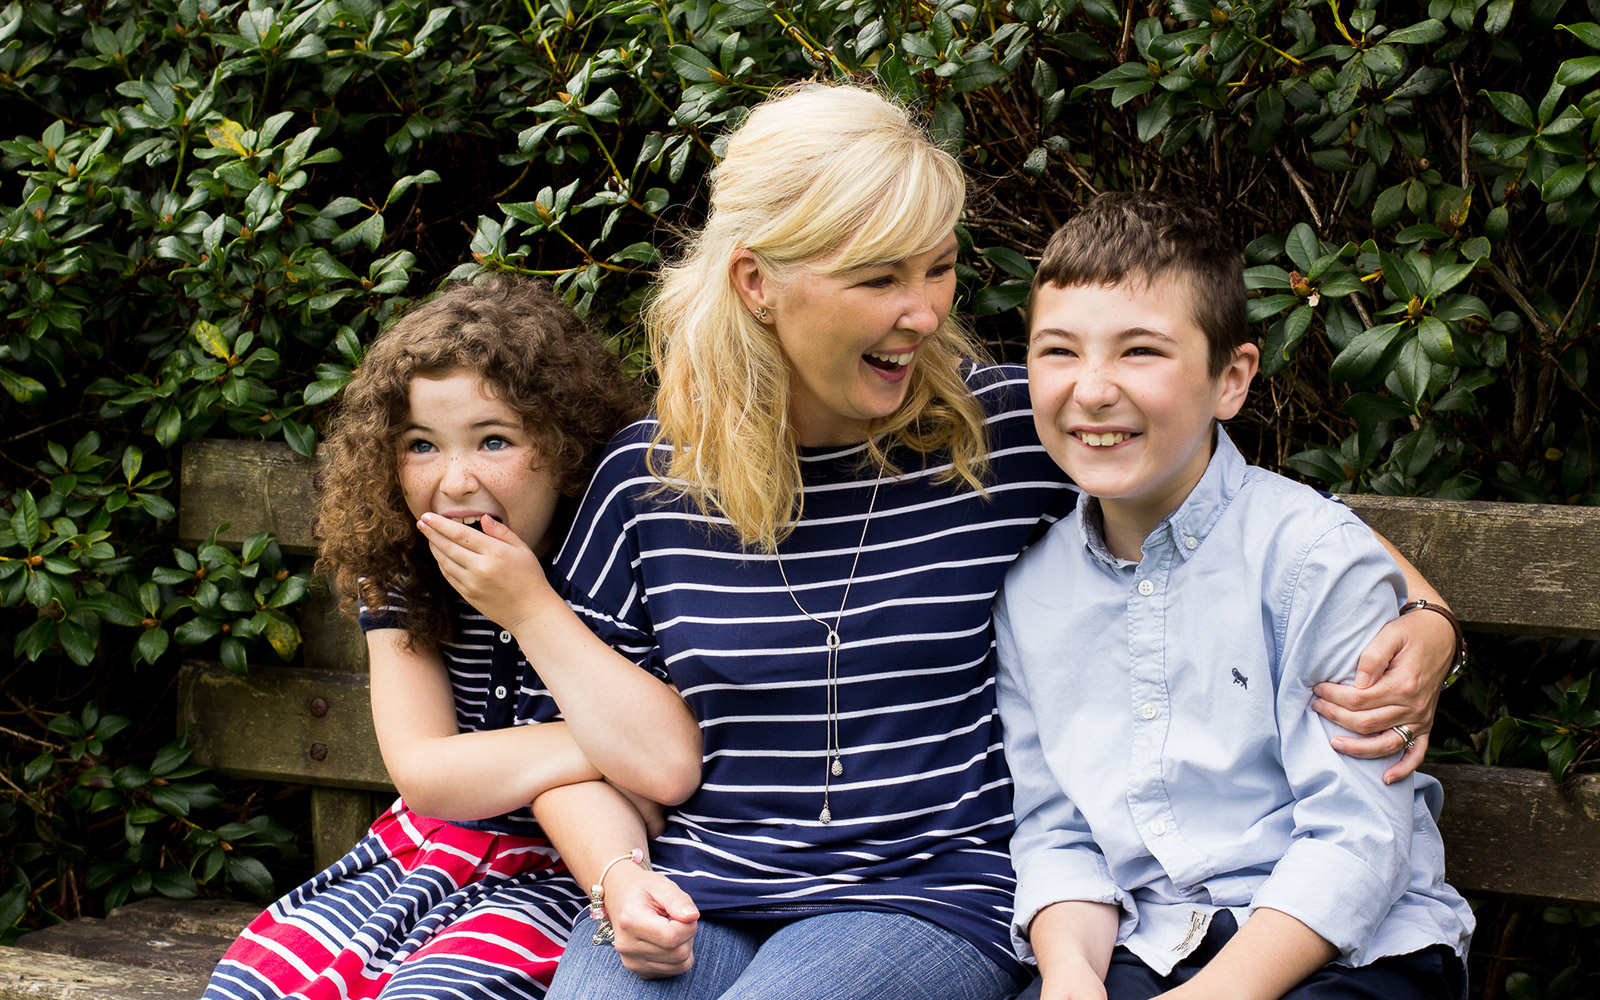 Mel Hudson Family Photography Belfast, Mum, son & daughter sitting on a park bench smiling and laughing